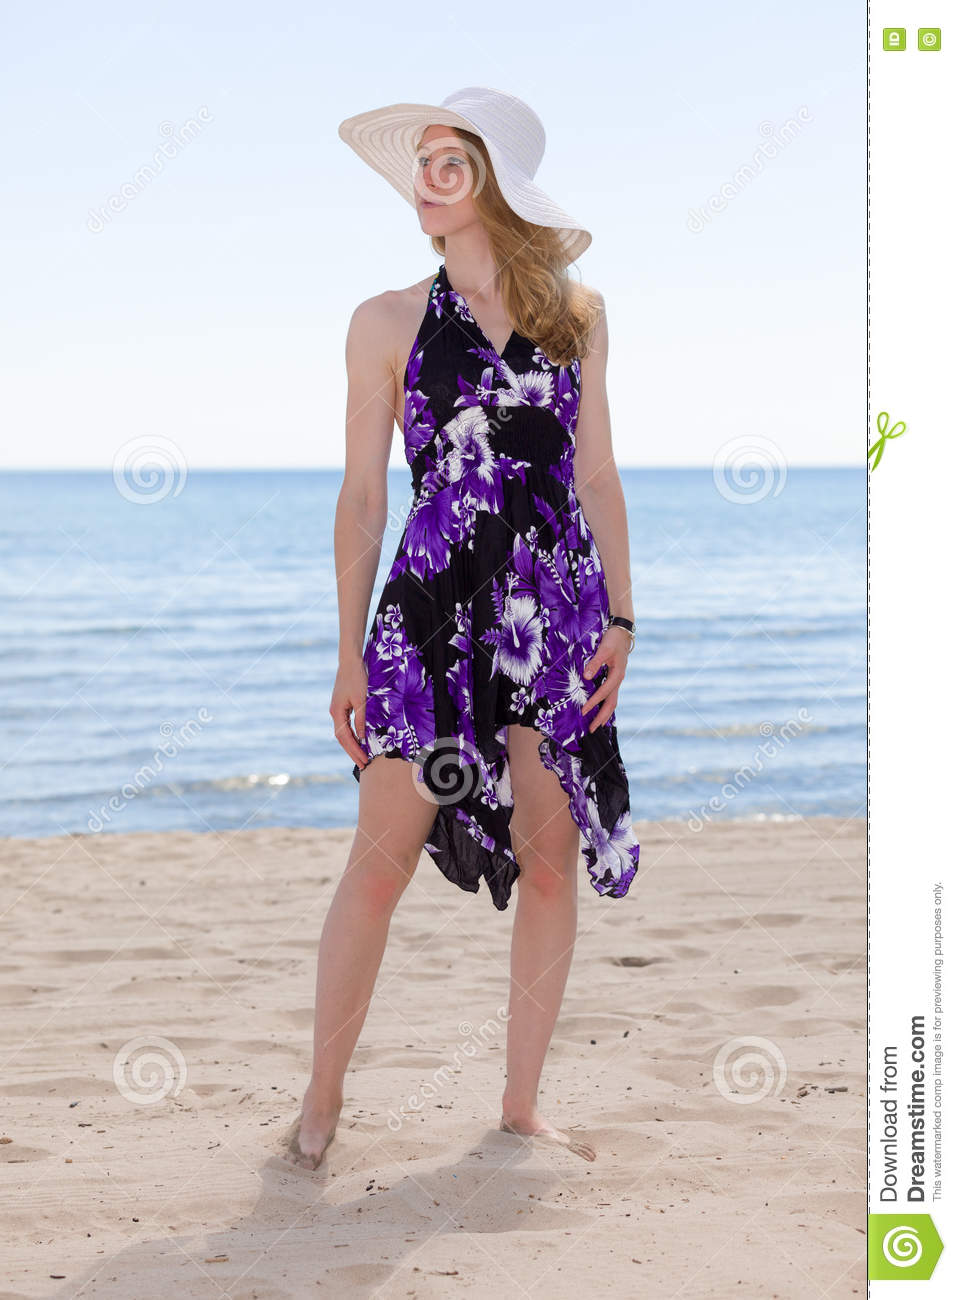 b65dbbccc5 Woman At The Beach Wearing A Sundress Stock Photo - Image of leisure ...